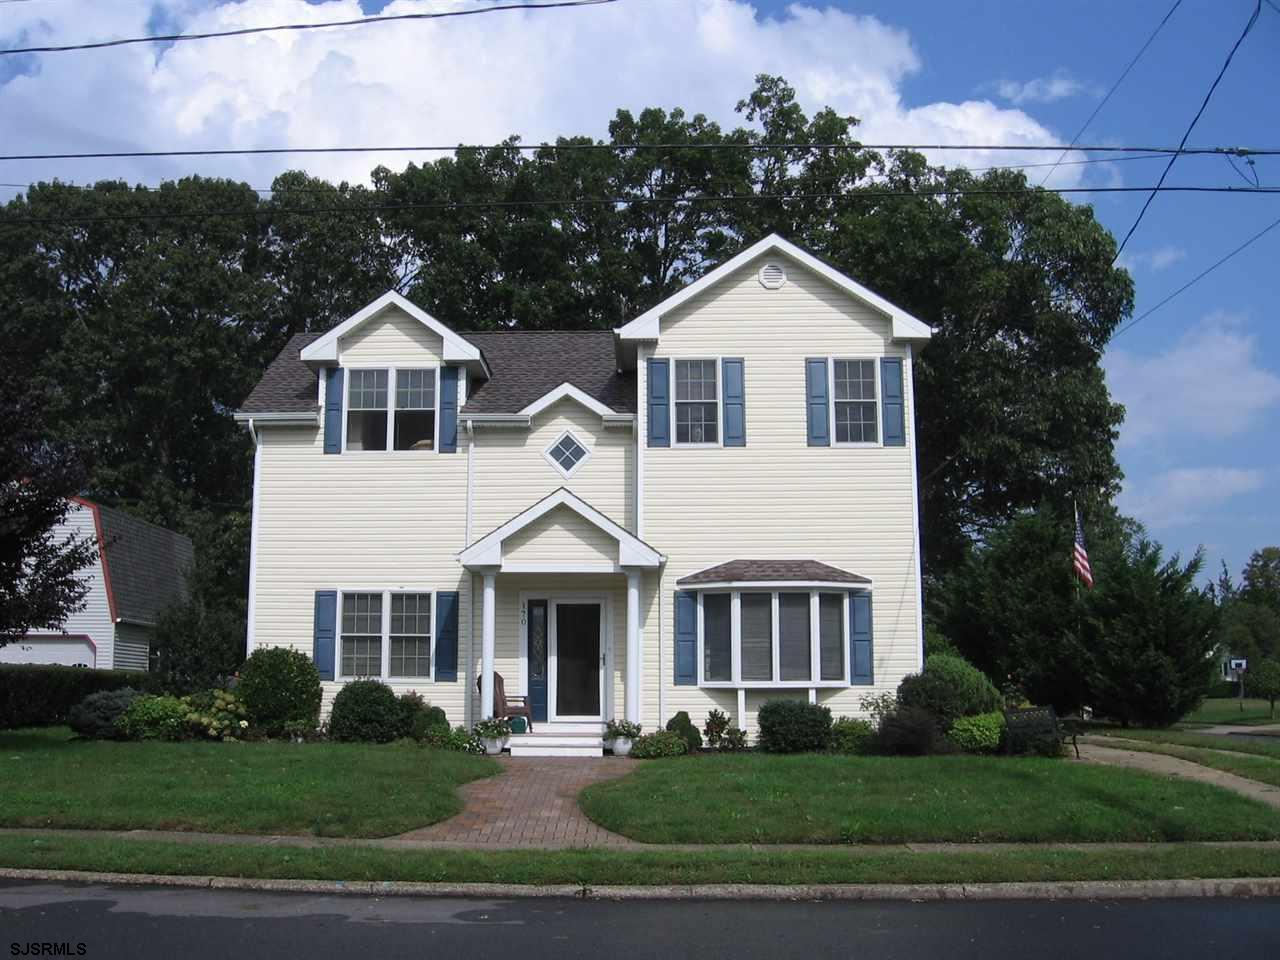 170 Bala Dr, Somers Point, NJ 08244